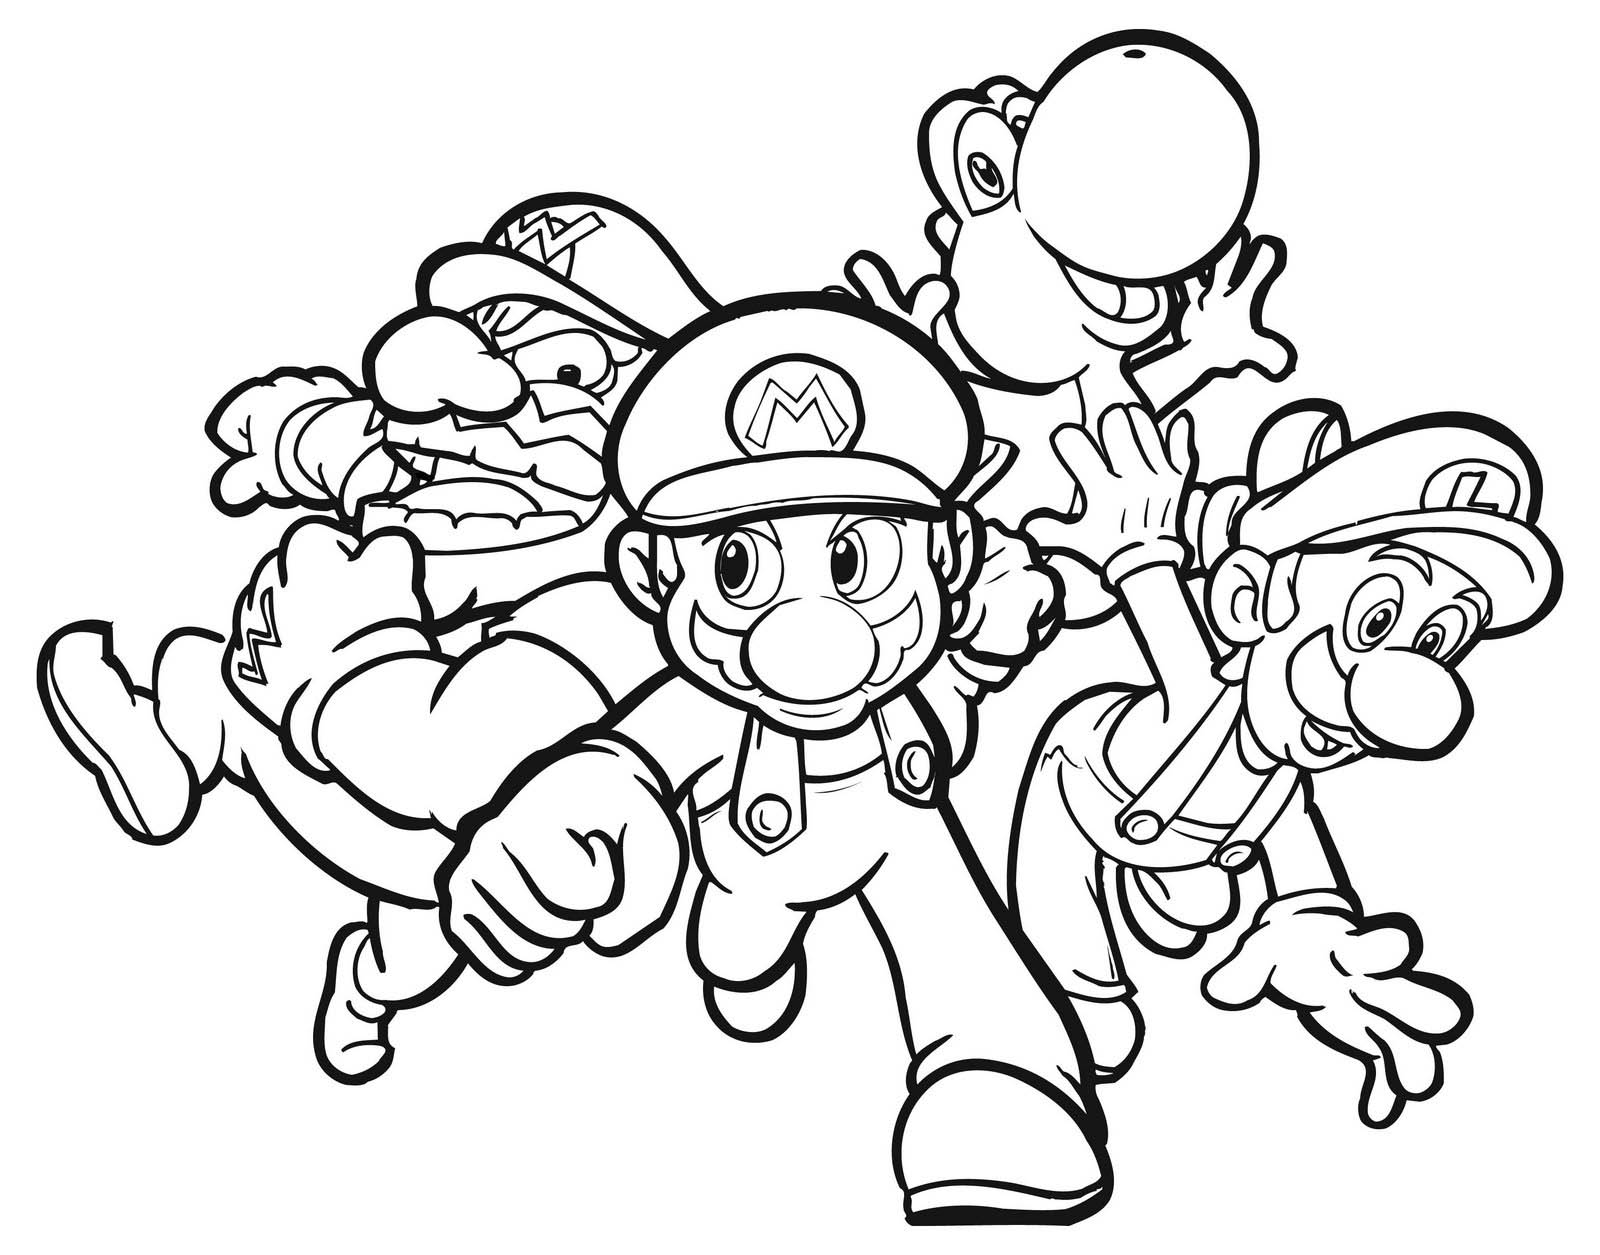 1600x1255 Mario Kart Coloring Pages Best For Kids